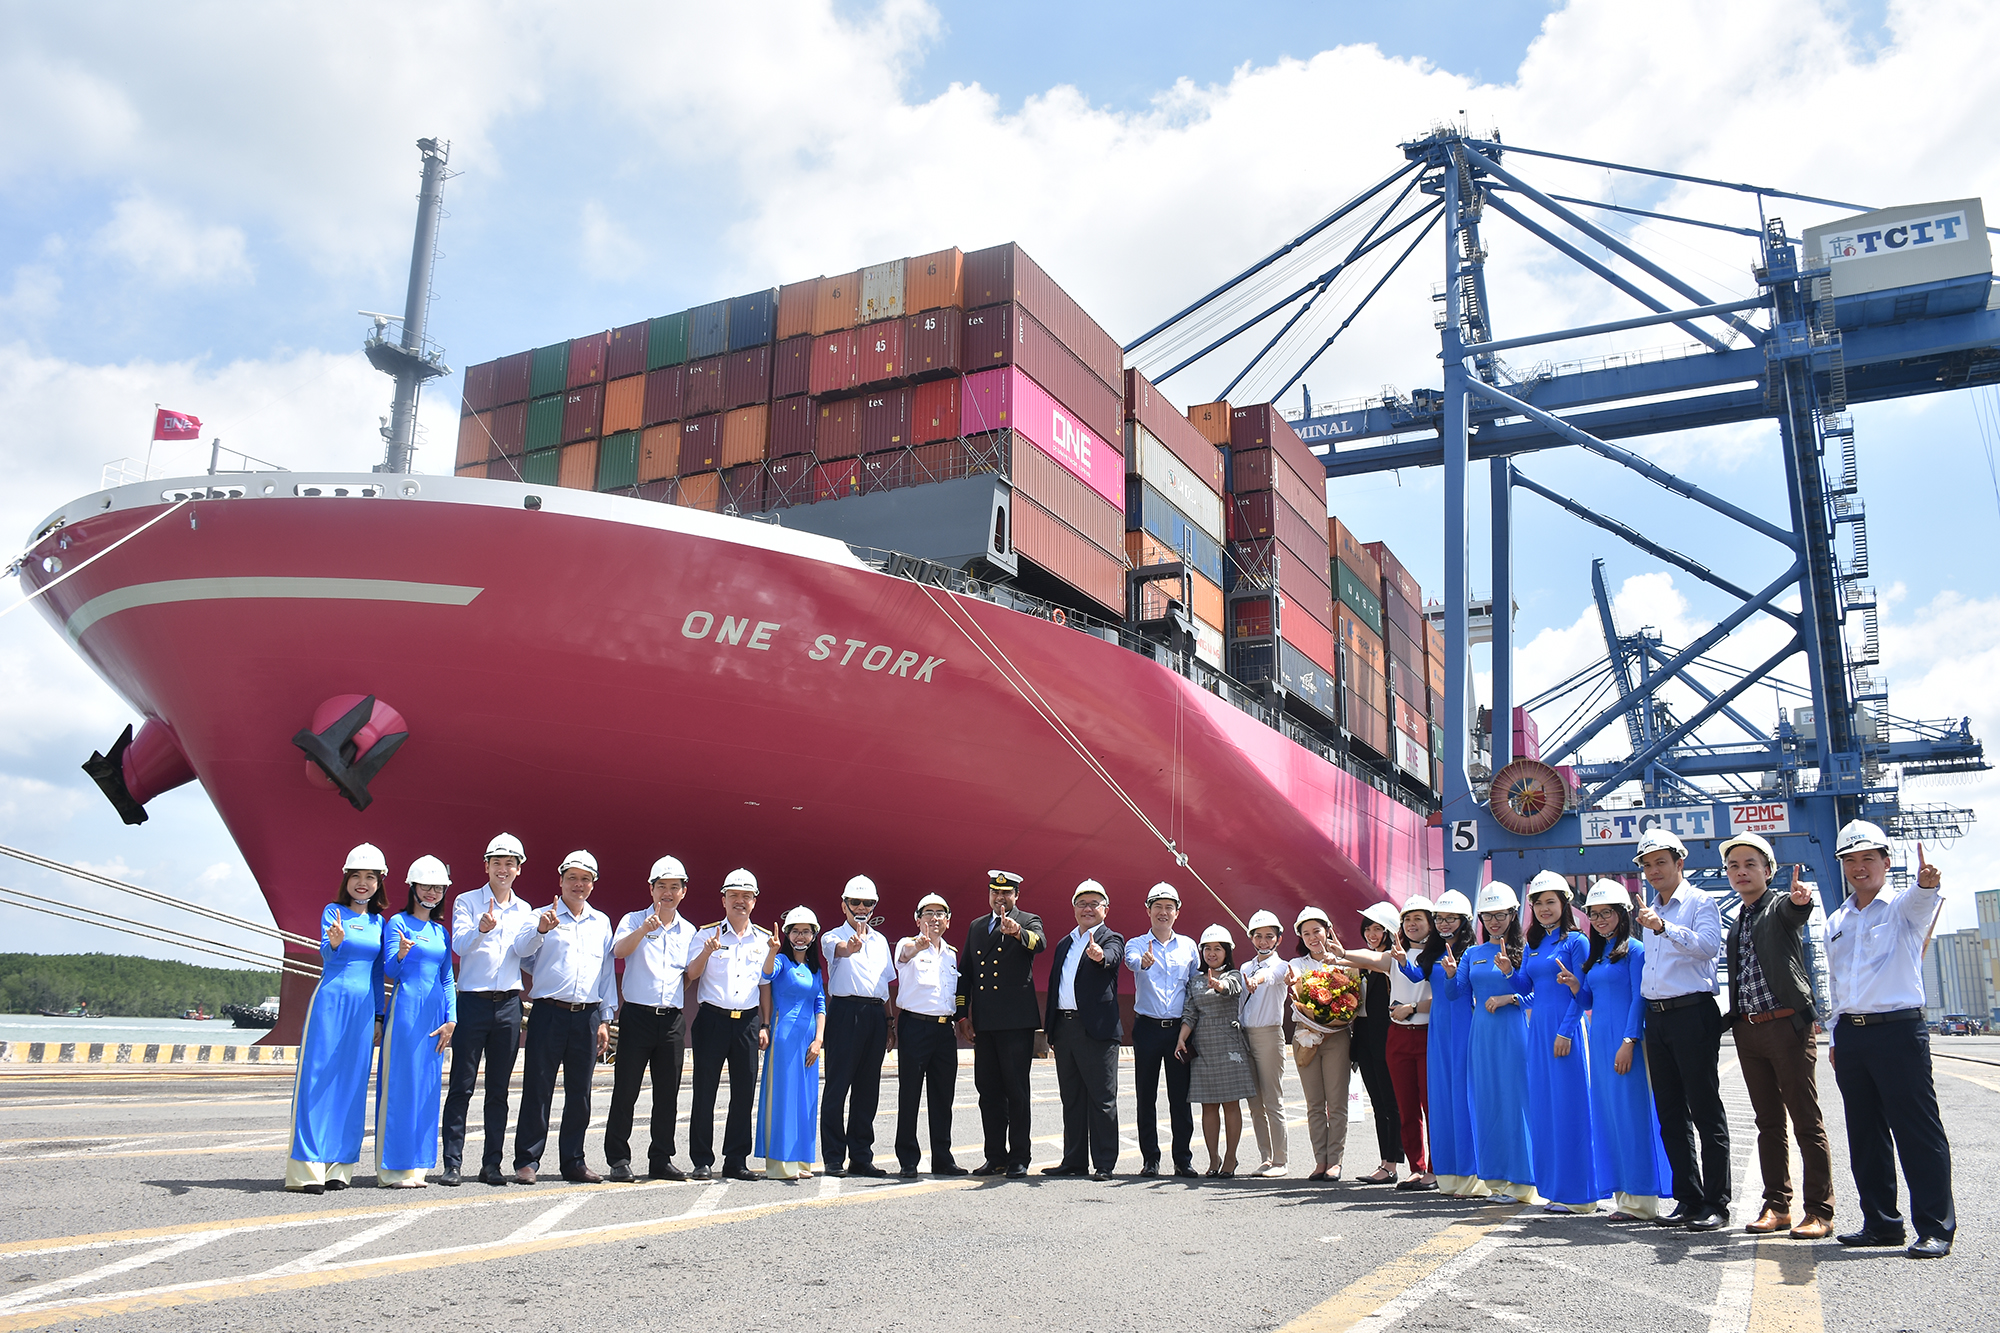 Tan Cang - Cai Mep International Terminal (TCIT) successfully welcomes maiden call of ONE STORK - the first newly built magenta containership